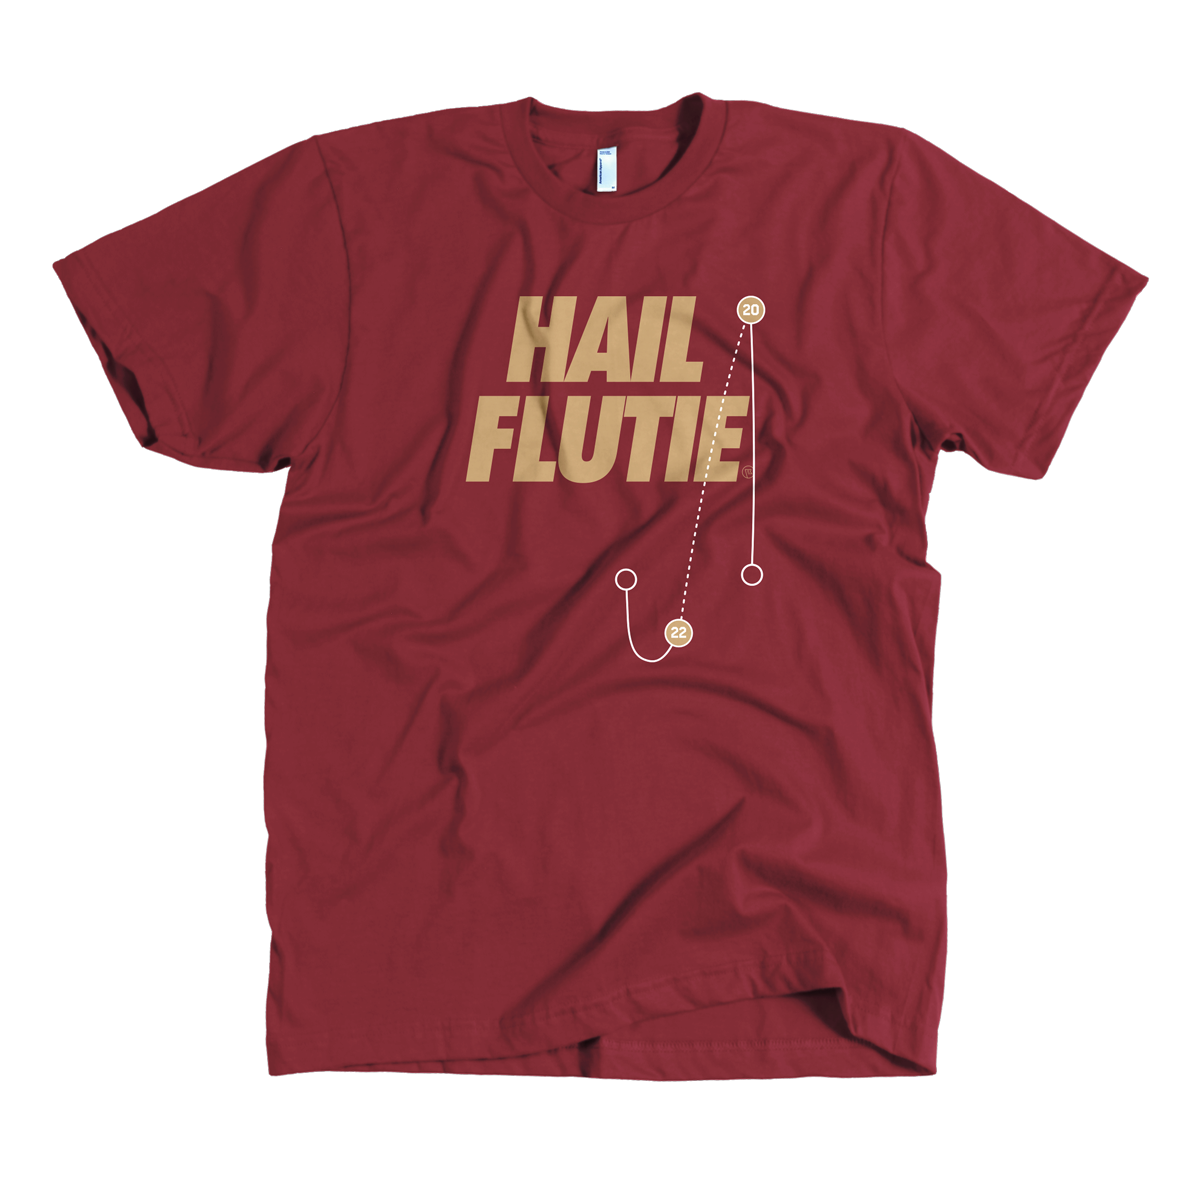 Hail Flutie Shirt